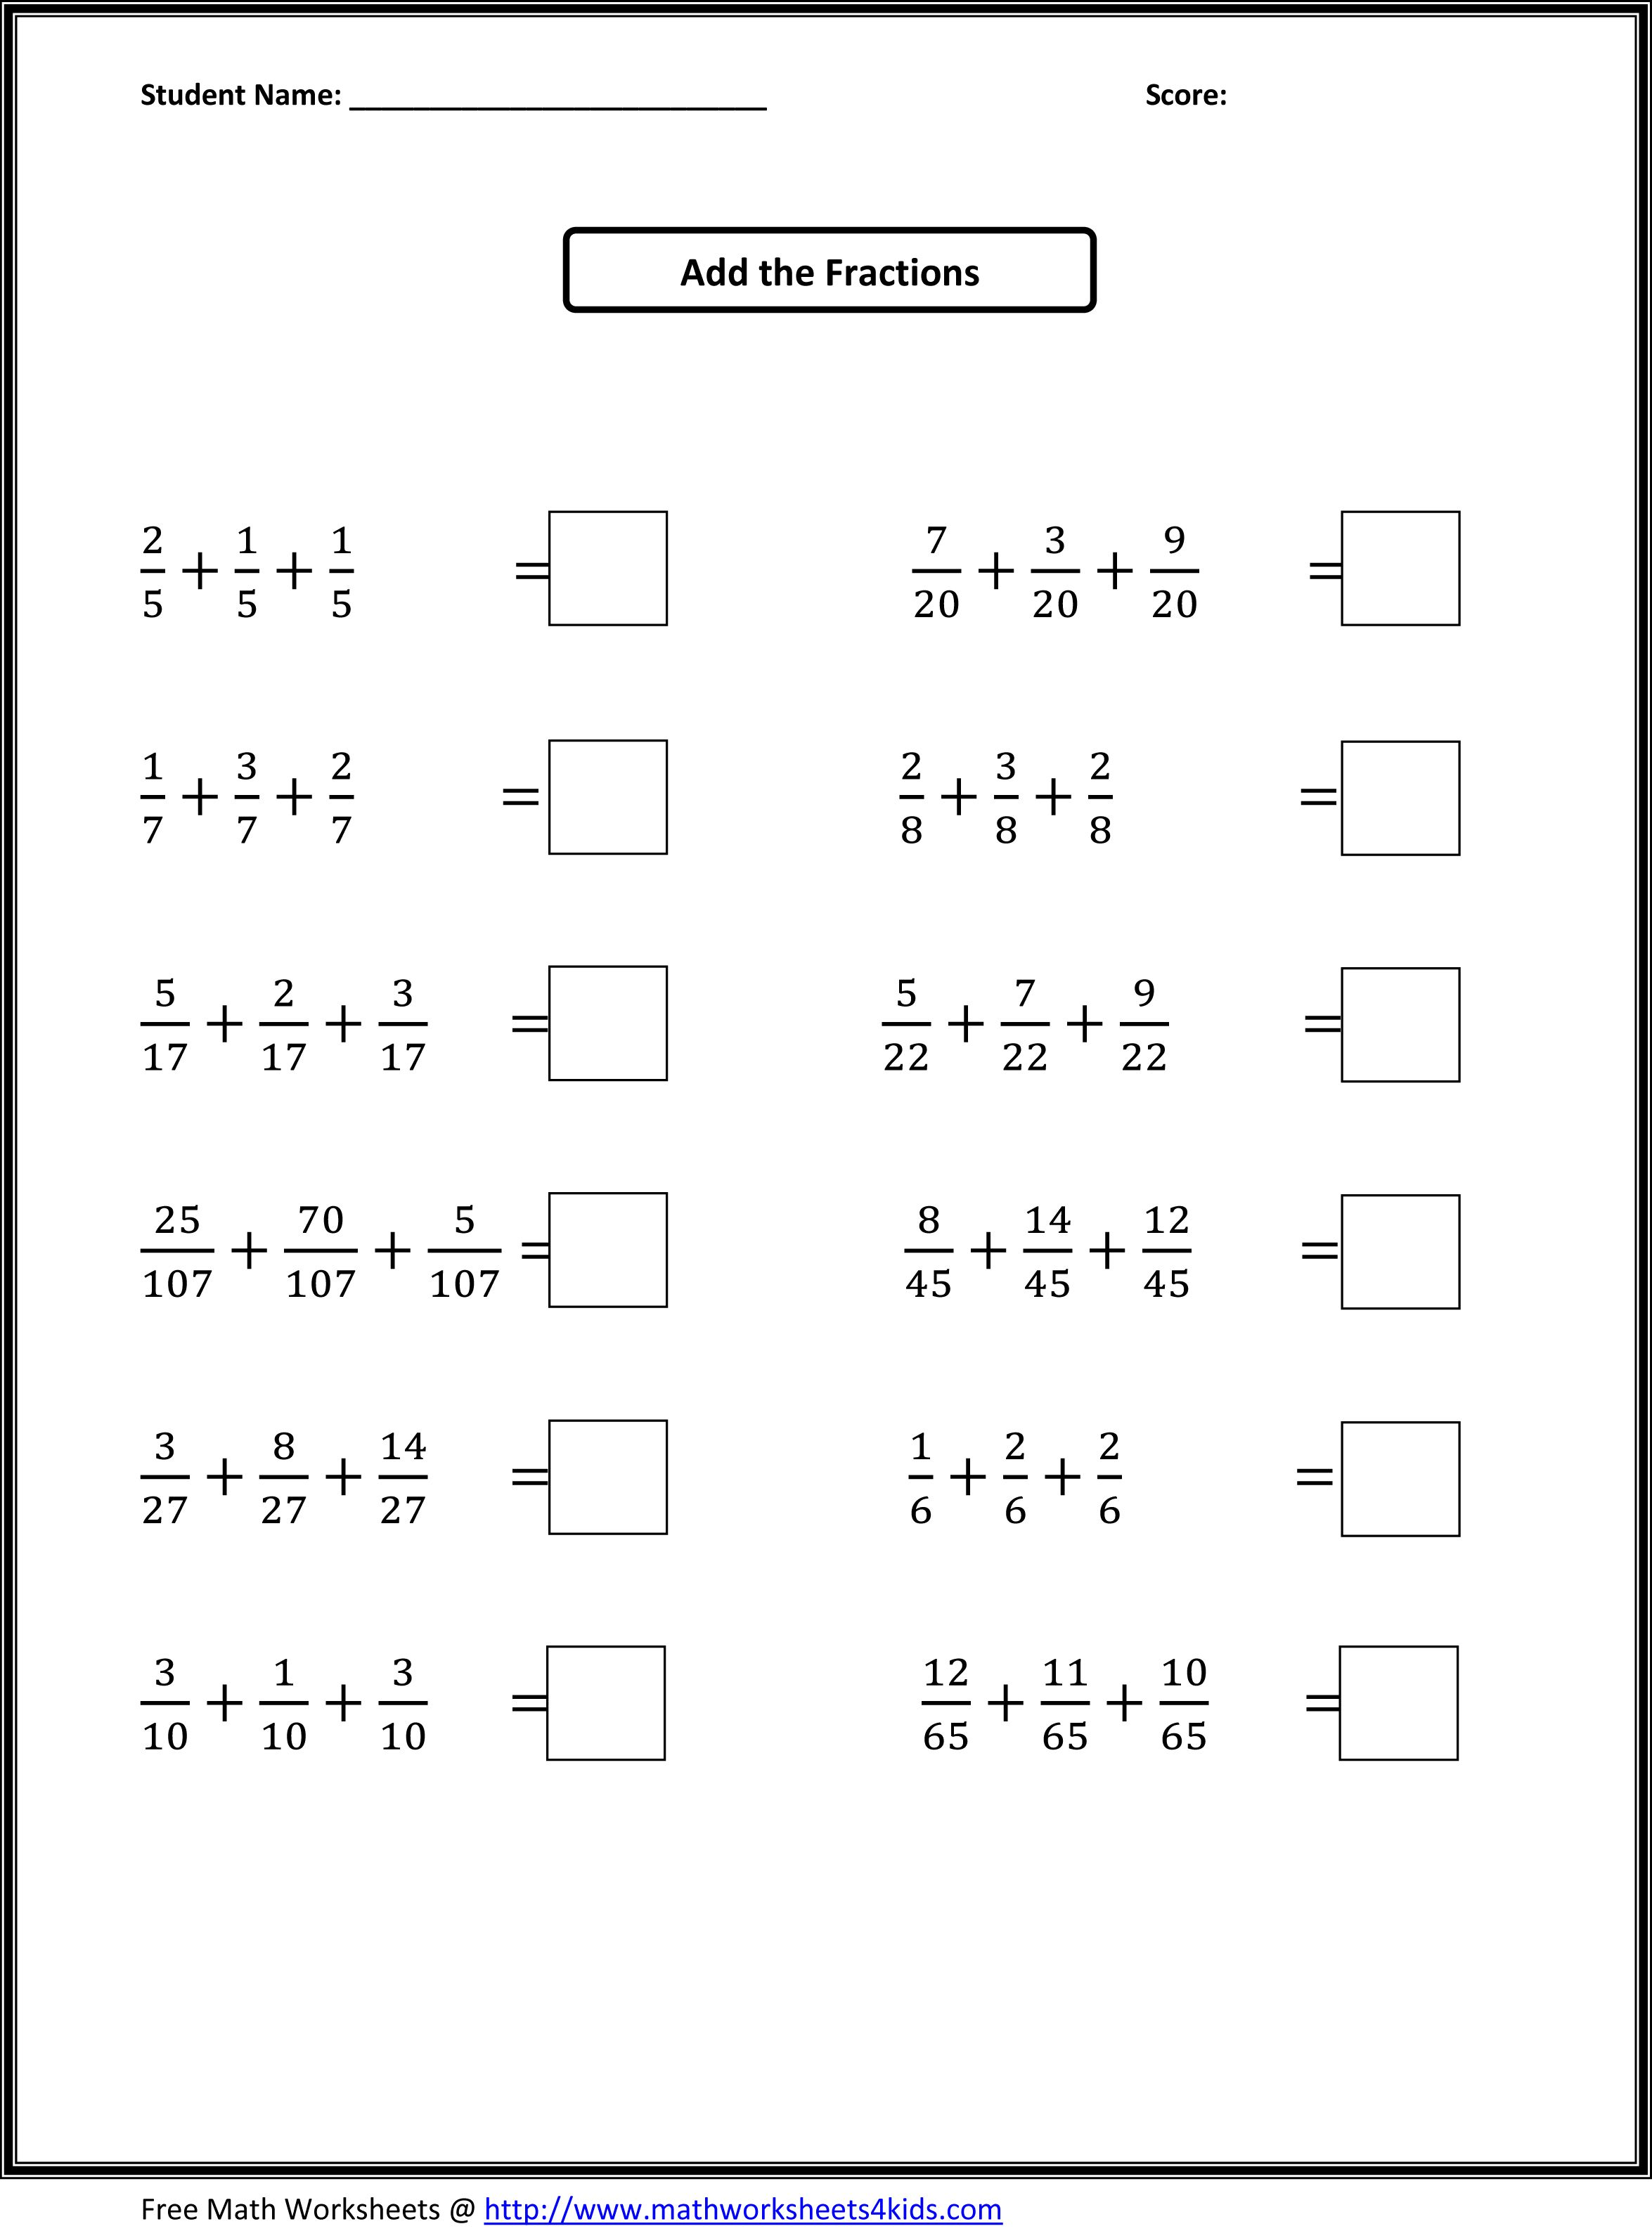 Worksheets Fraction Worksheets 4th Grade printable worksheets by grade level and skill teaching ideas fourth math worksheets